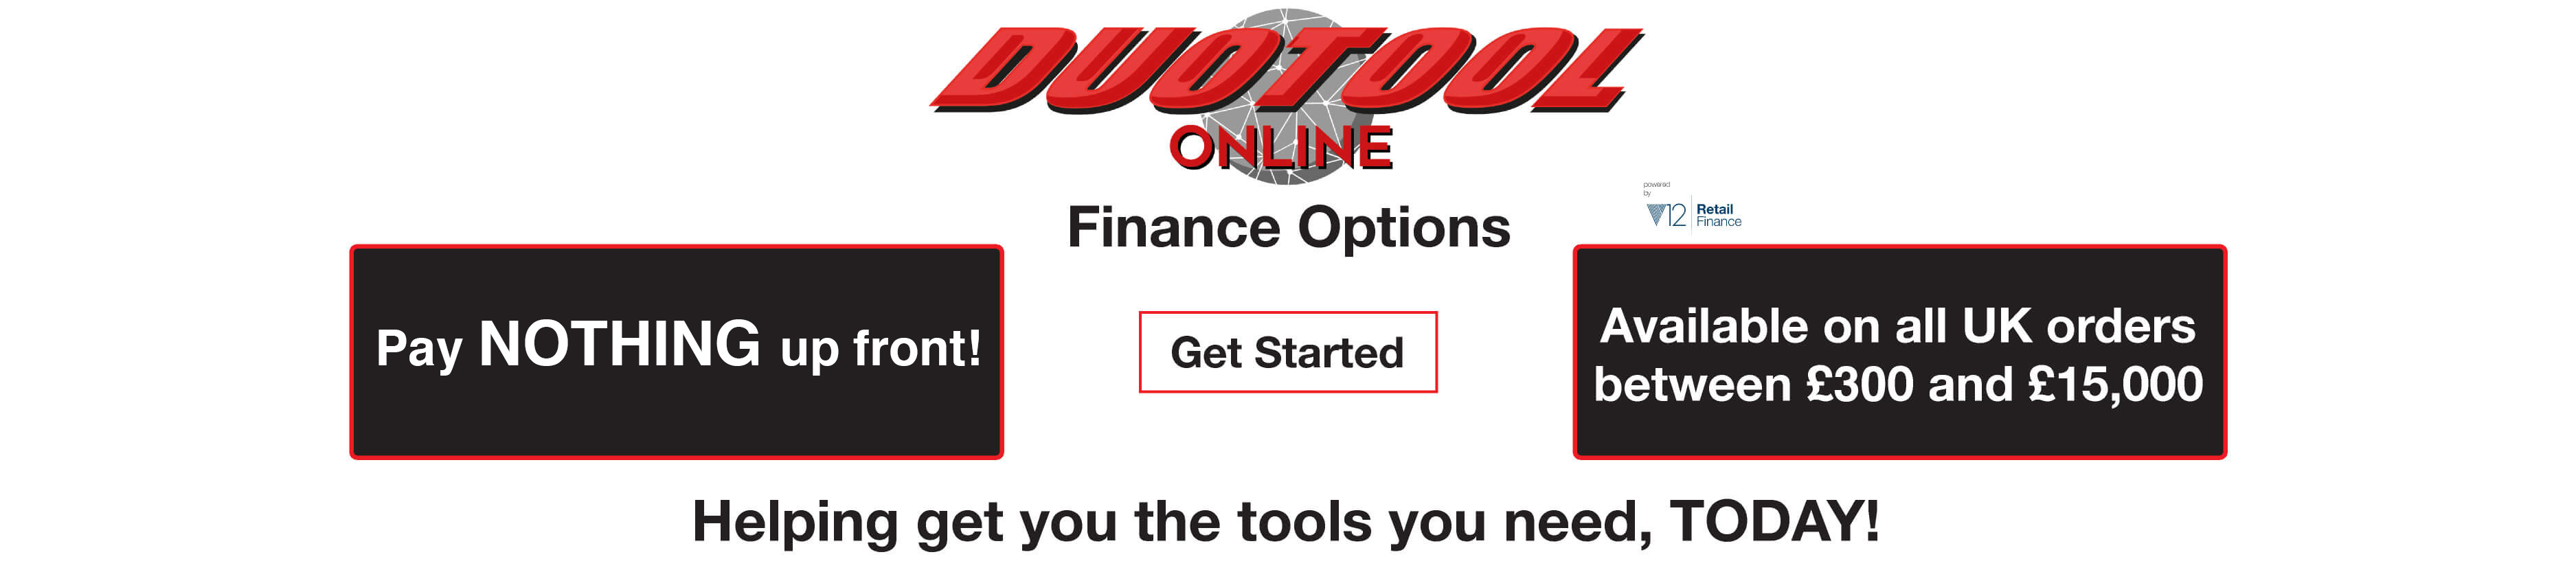 Duotool Finance